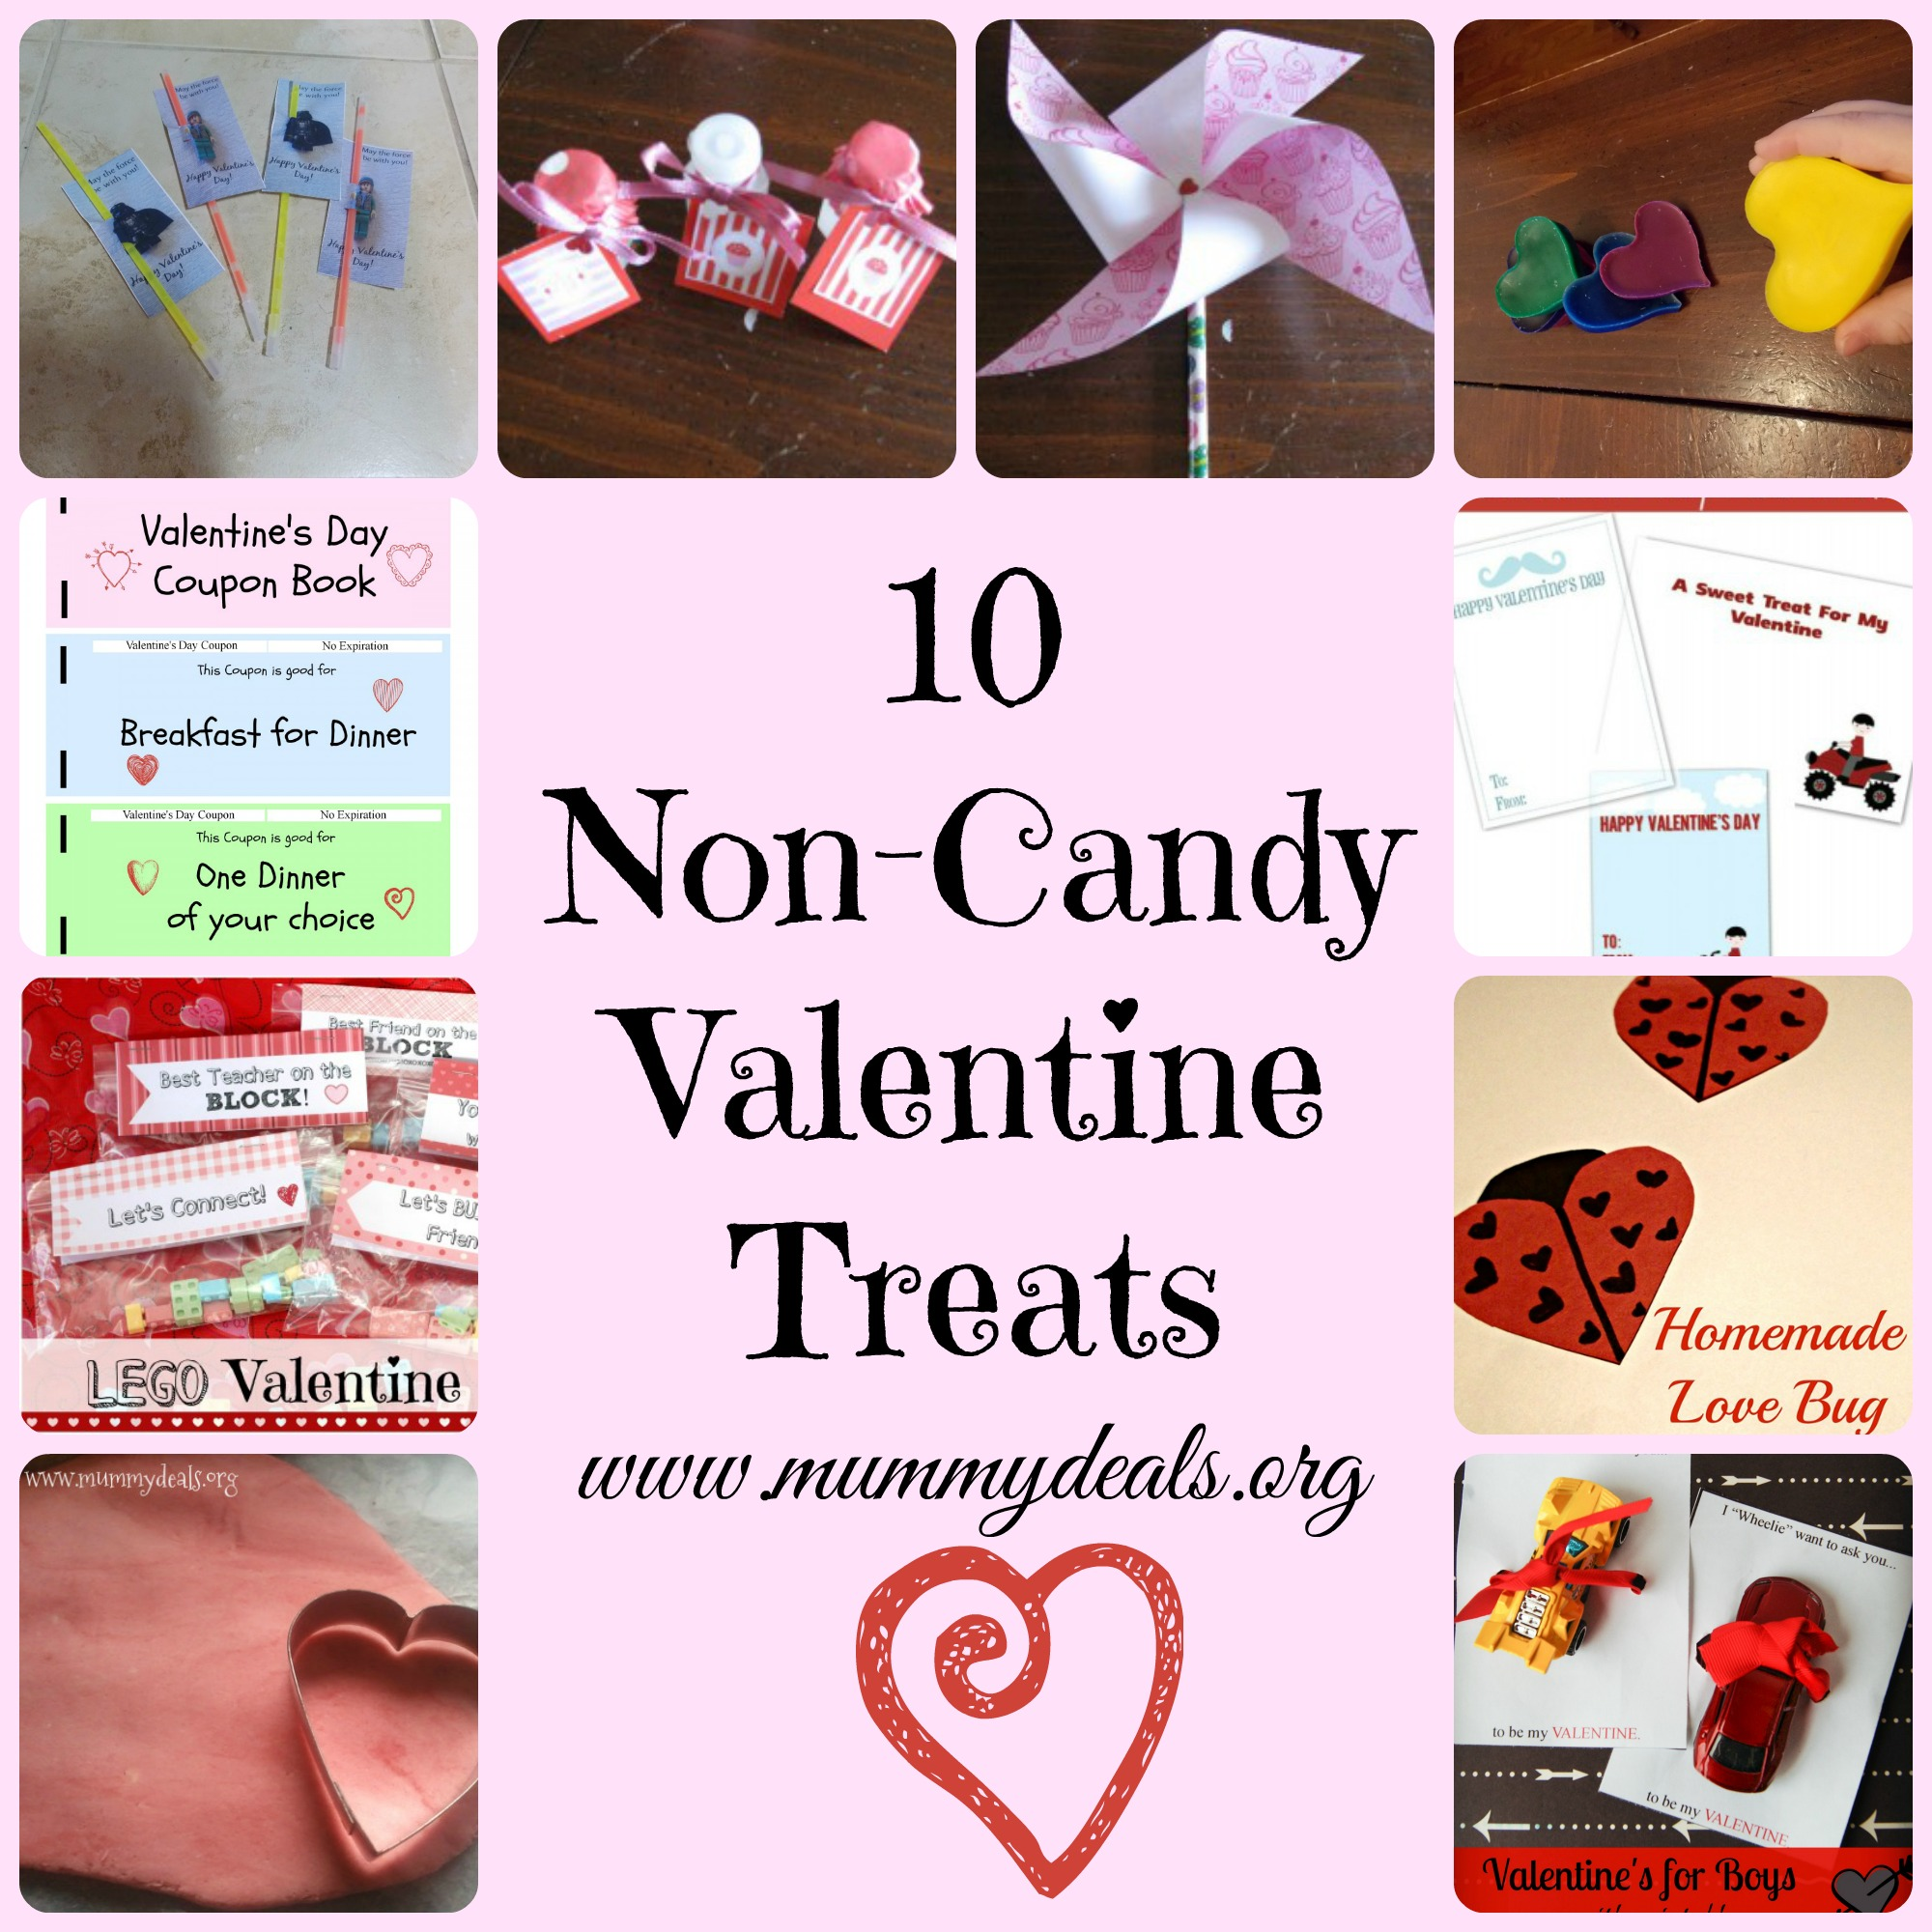 10 Non-Candy Valentine Treats